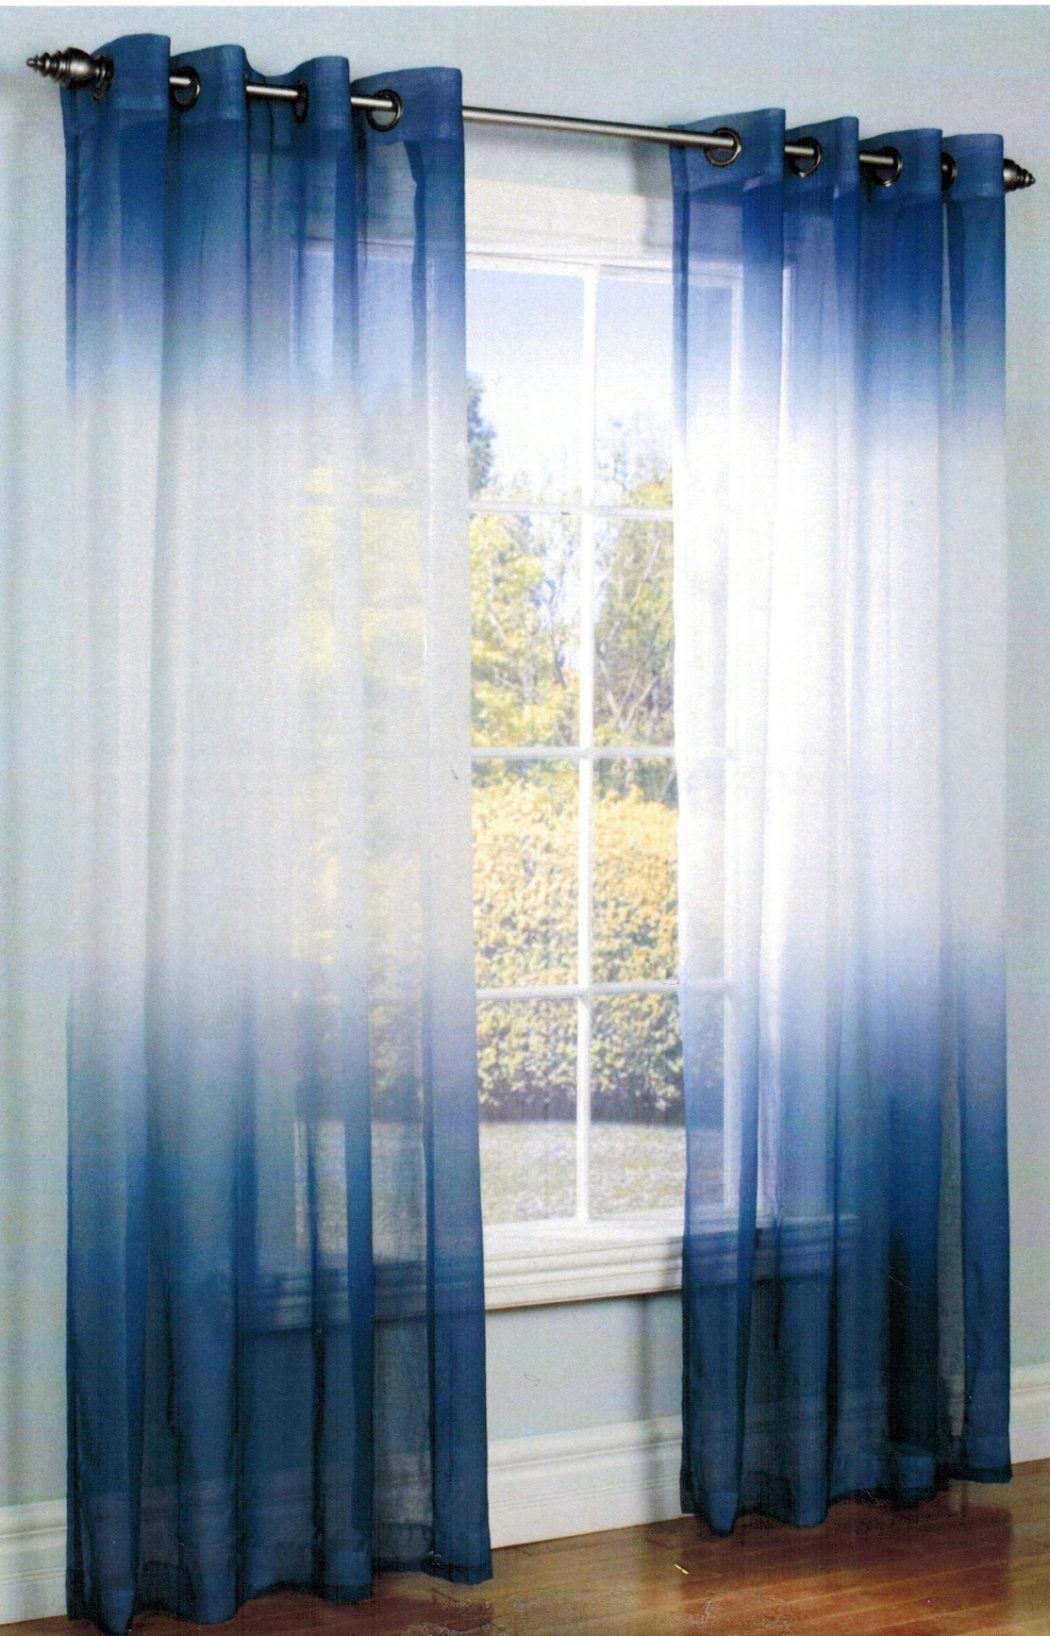 j-ombre-1 20+ Hottest Curtain Designs for 2018